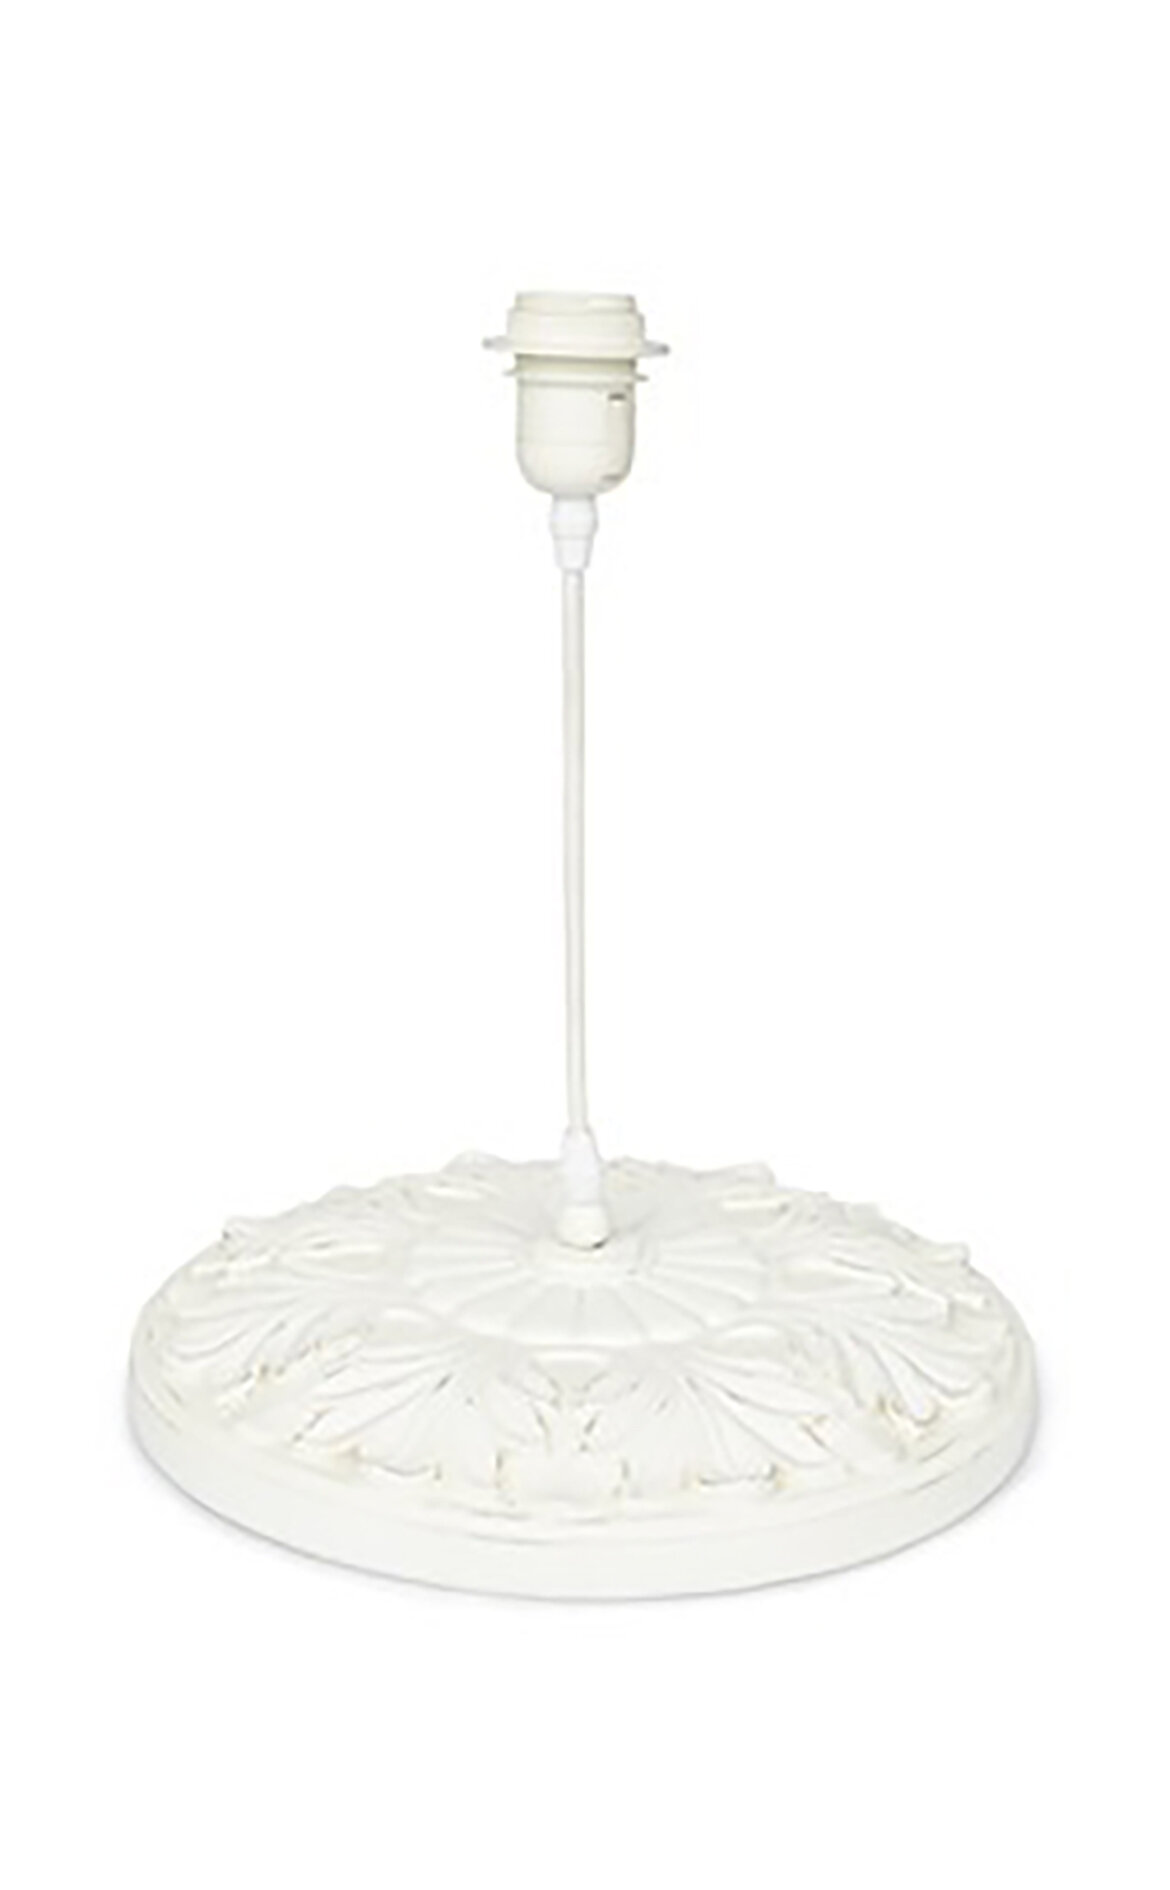 Laura Ashley Sienna Ceiling Rose Avize